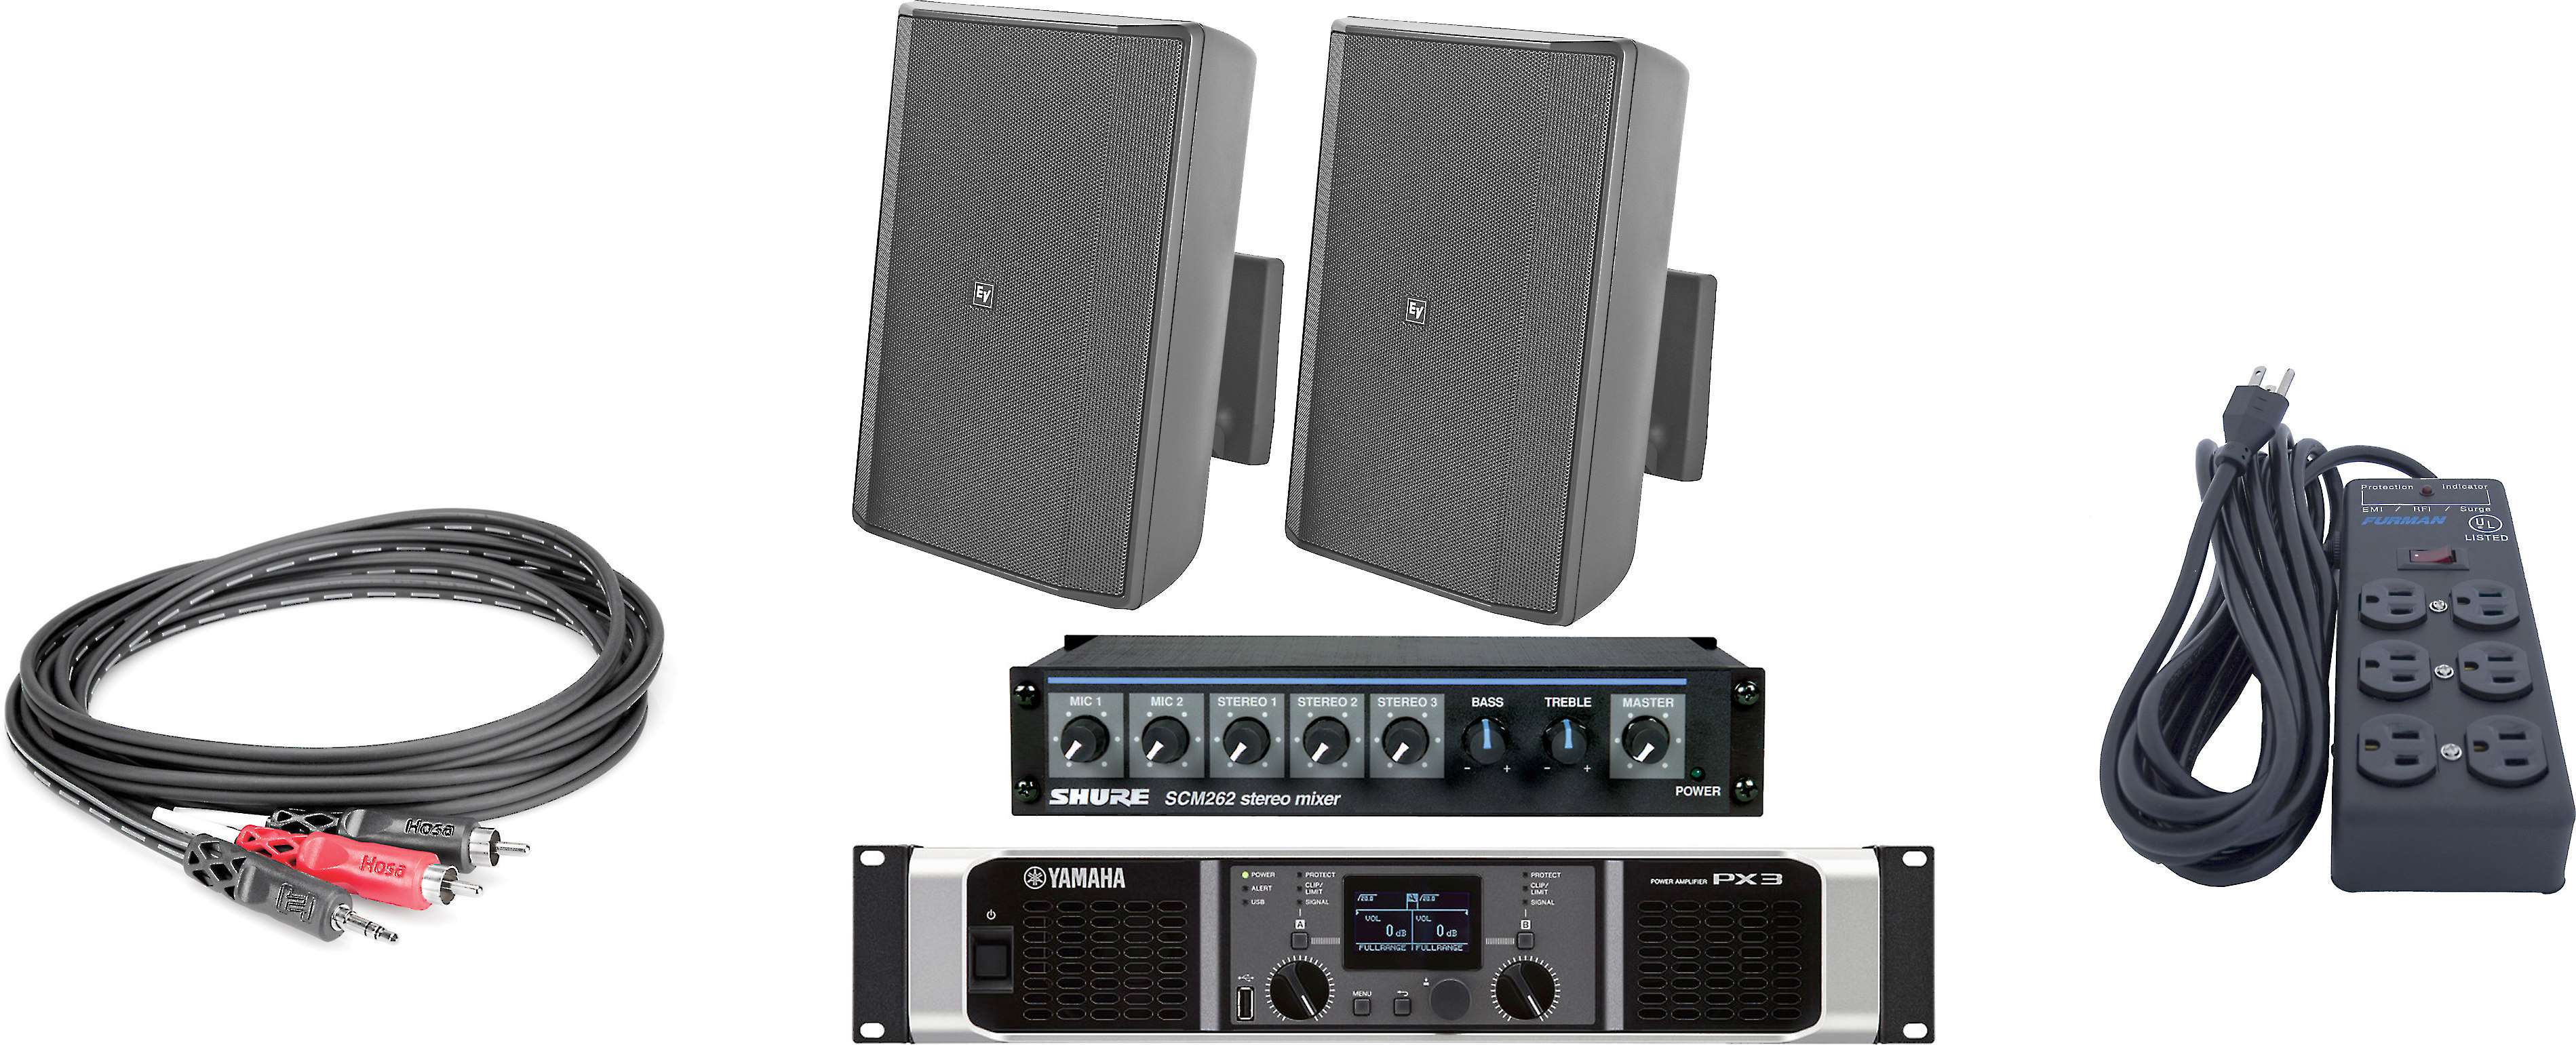 Electro voice gym sound system bundle fill your workout space with